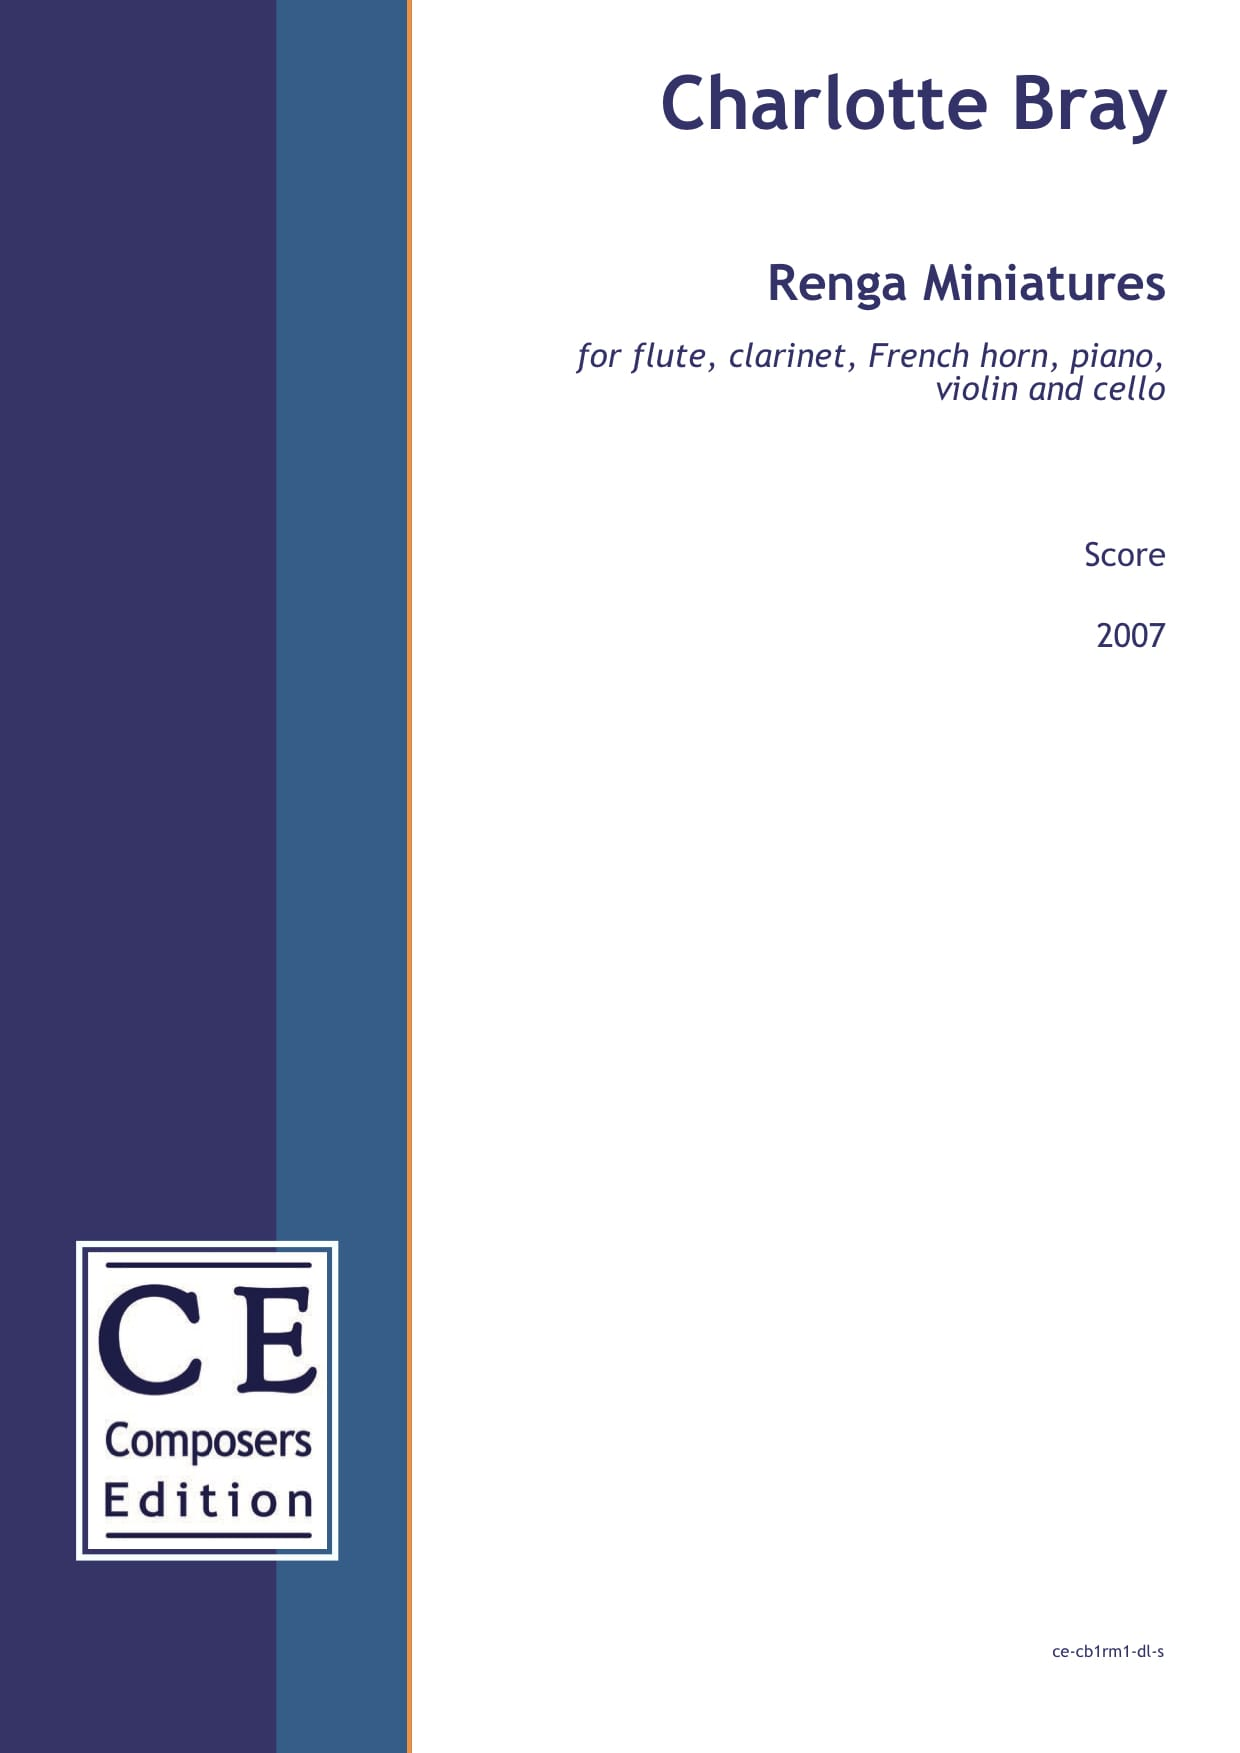 Charlotte Bray: Renga Miniatures for flute, clarinet, french horn, piano, violin & cello